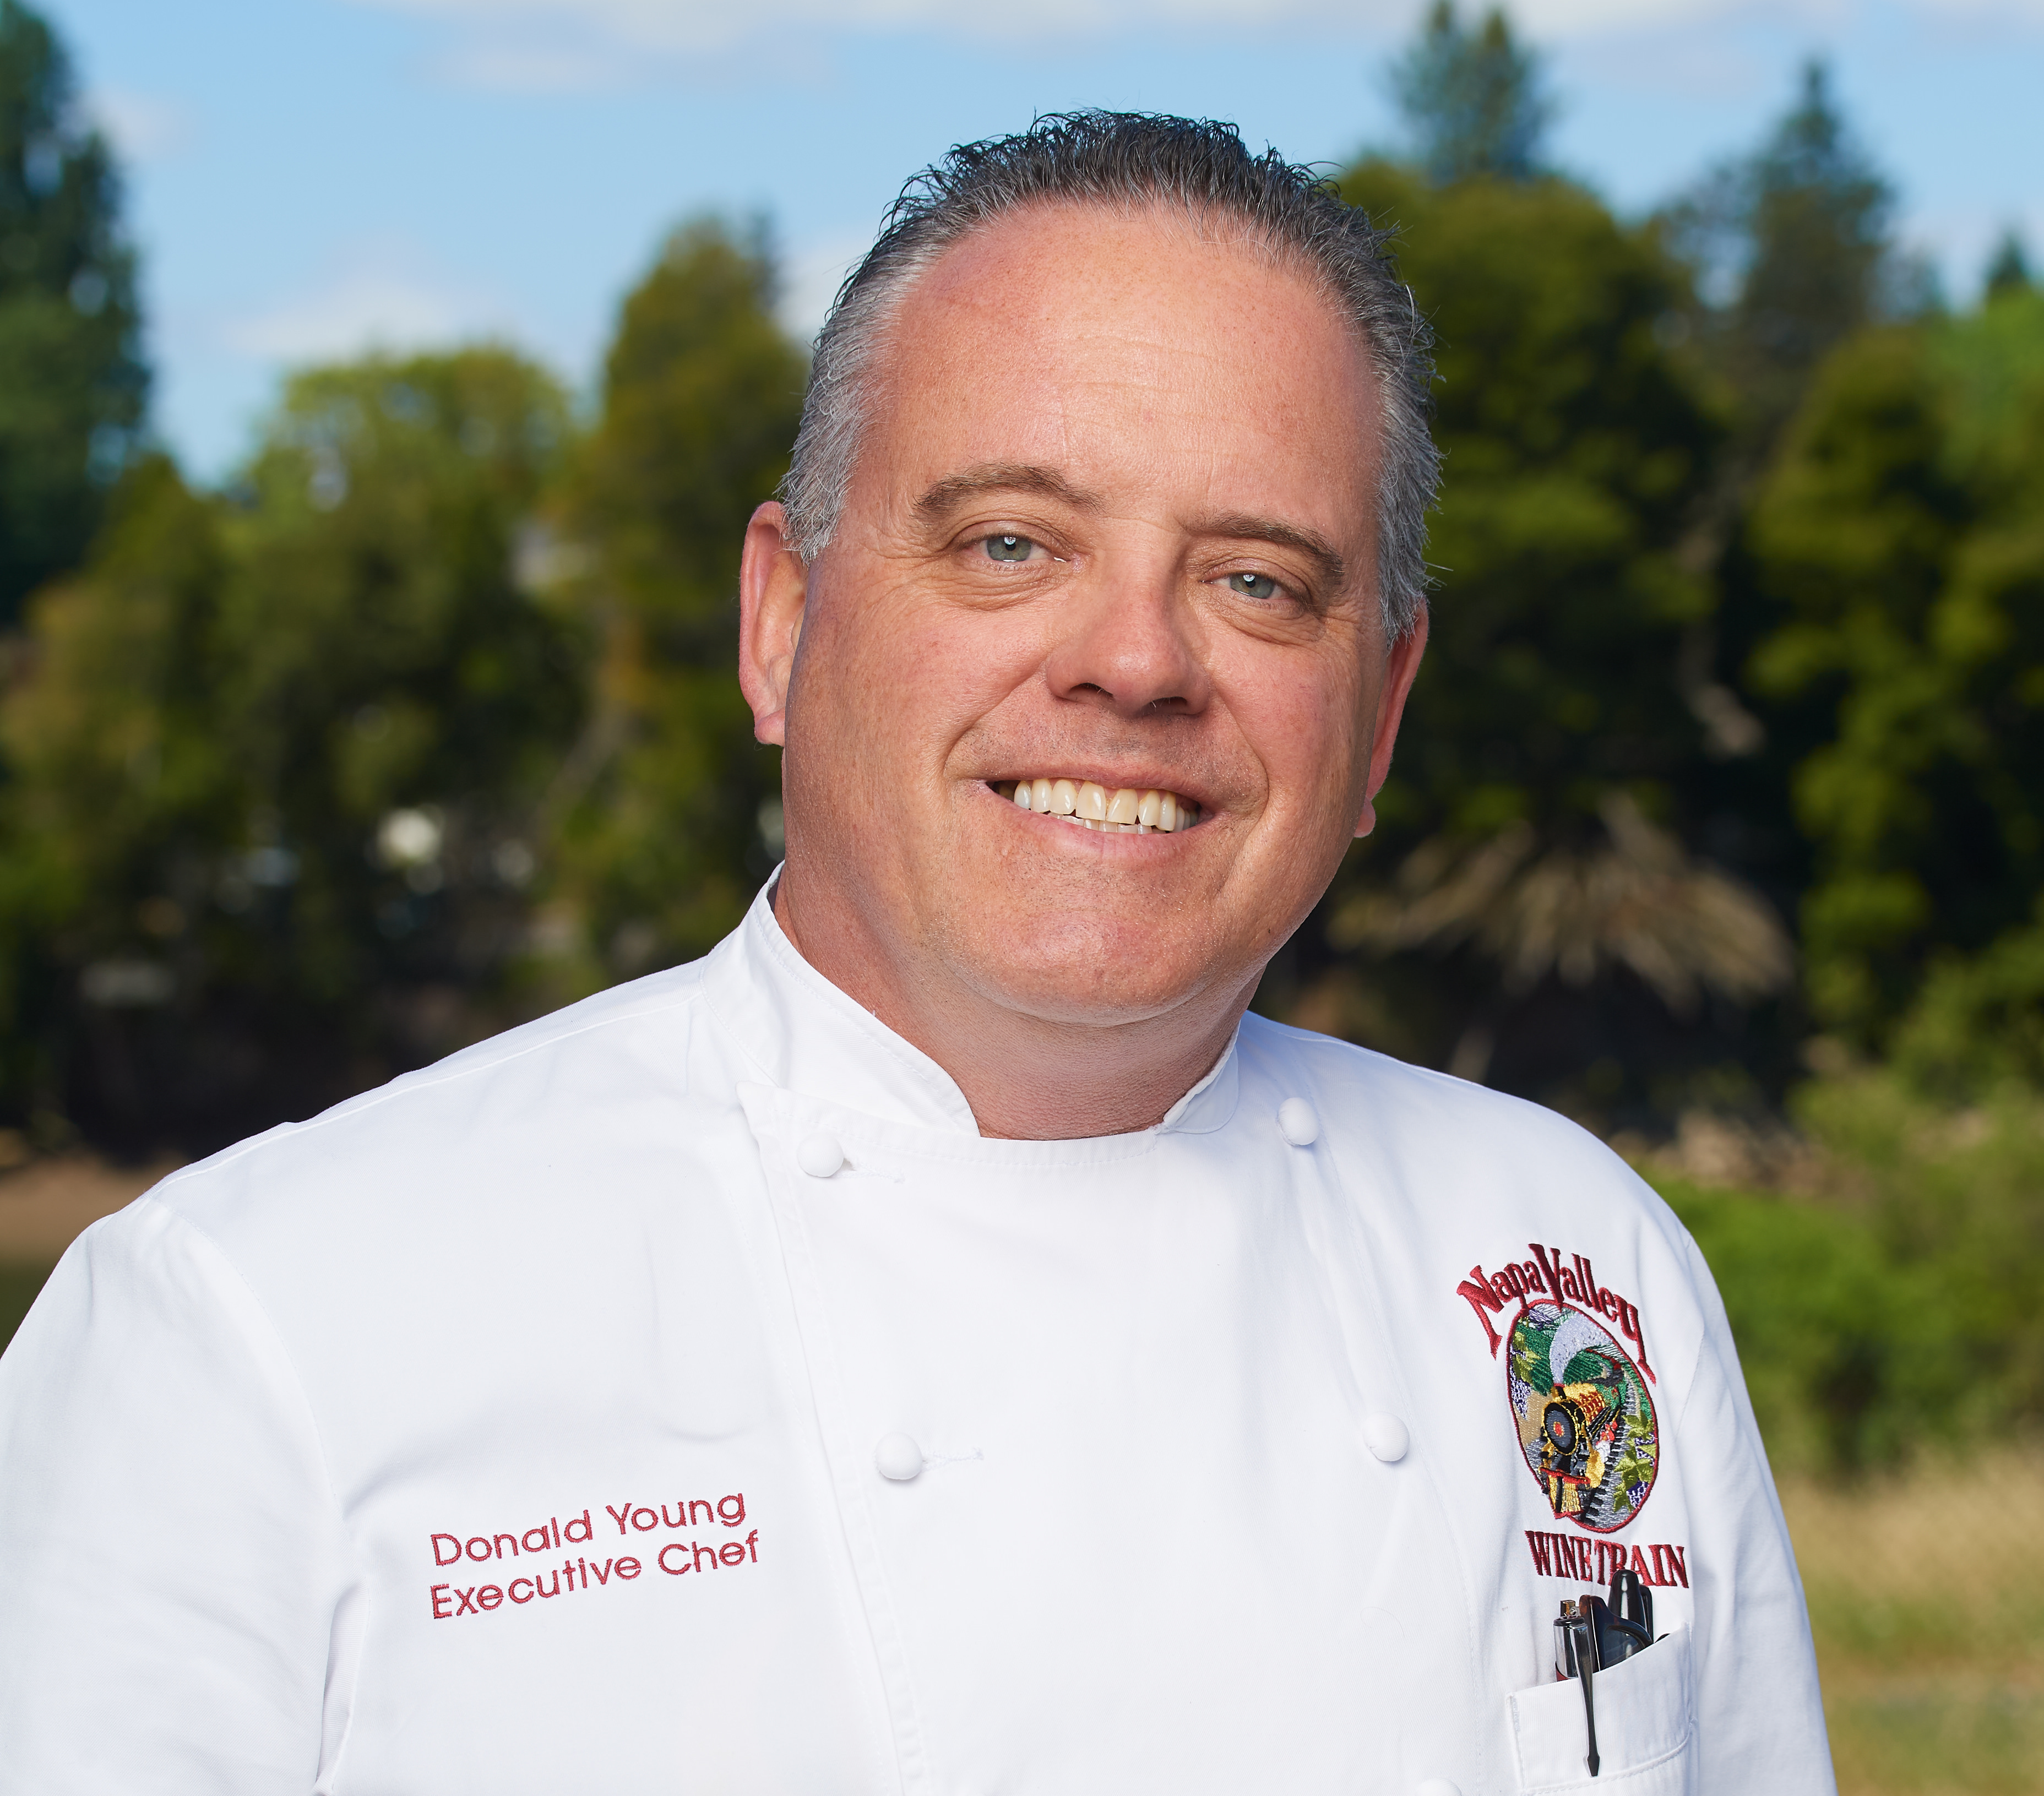 Get to Know Our Chefs: Donald Young 2